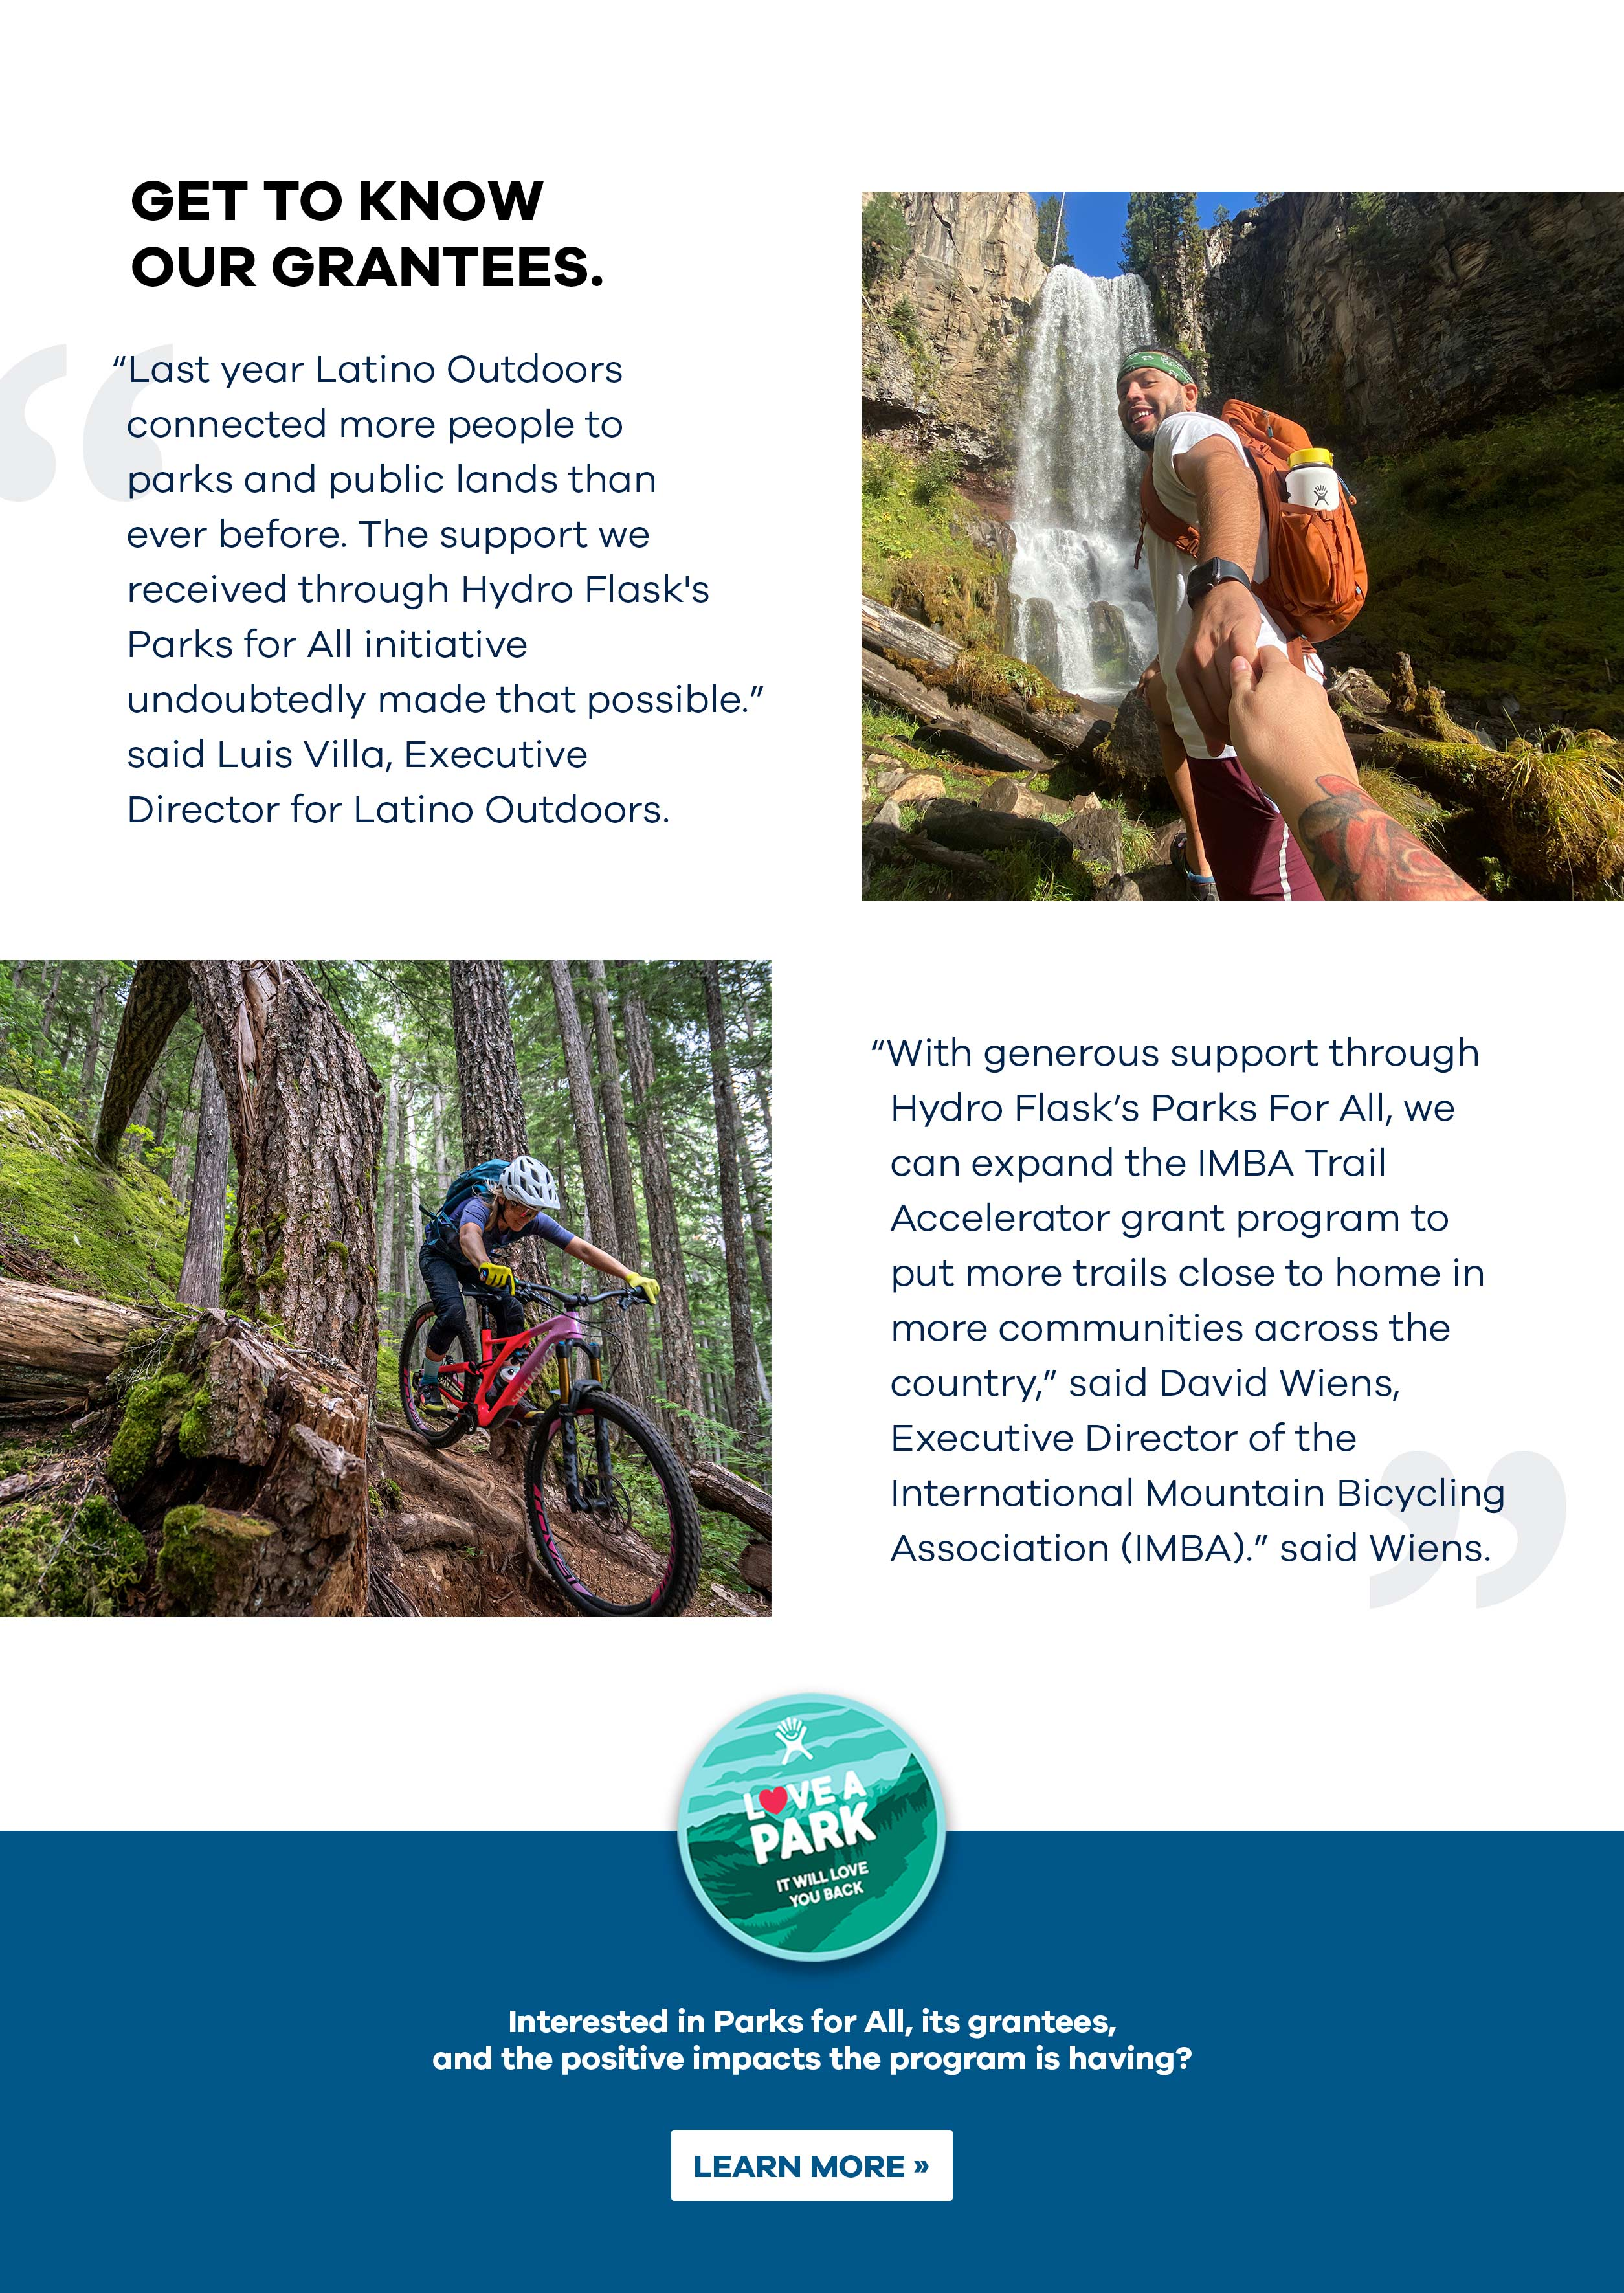 Get to know or grantees. ''Last year Latino Outdoors connected more people to parks and public lands than ever before. The support we receive through Hydro Flask''s Parks for All initiative undoubtedly made that possible.'' said Luis Villa, Executive Director for Latino Outdoors. ''With generous support through Hydro Flask''s Parks for All we can expand the IMBA Trail Accelerator grant program to put more trails close to home in more communities across the country,'' said David Wiens, Executive Director of the International Mountain Bicycling Association IMBA. Interested in Parks for All, its grantees and the positive effects for the program is having? LEARN MORE>>